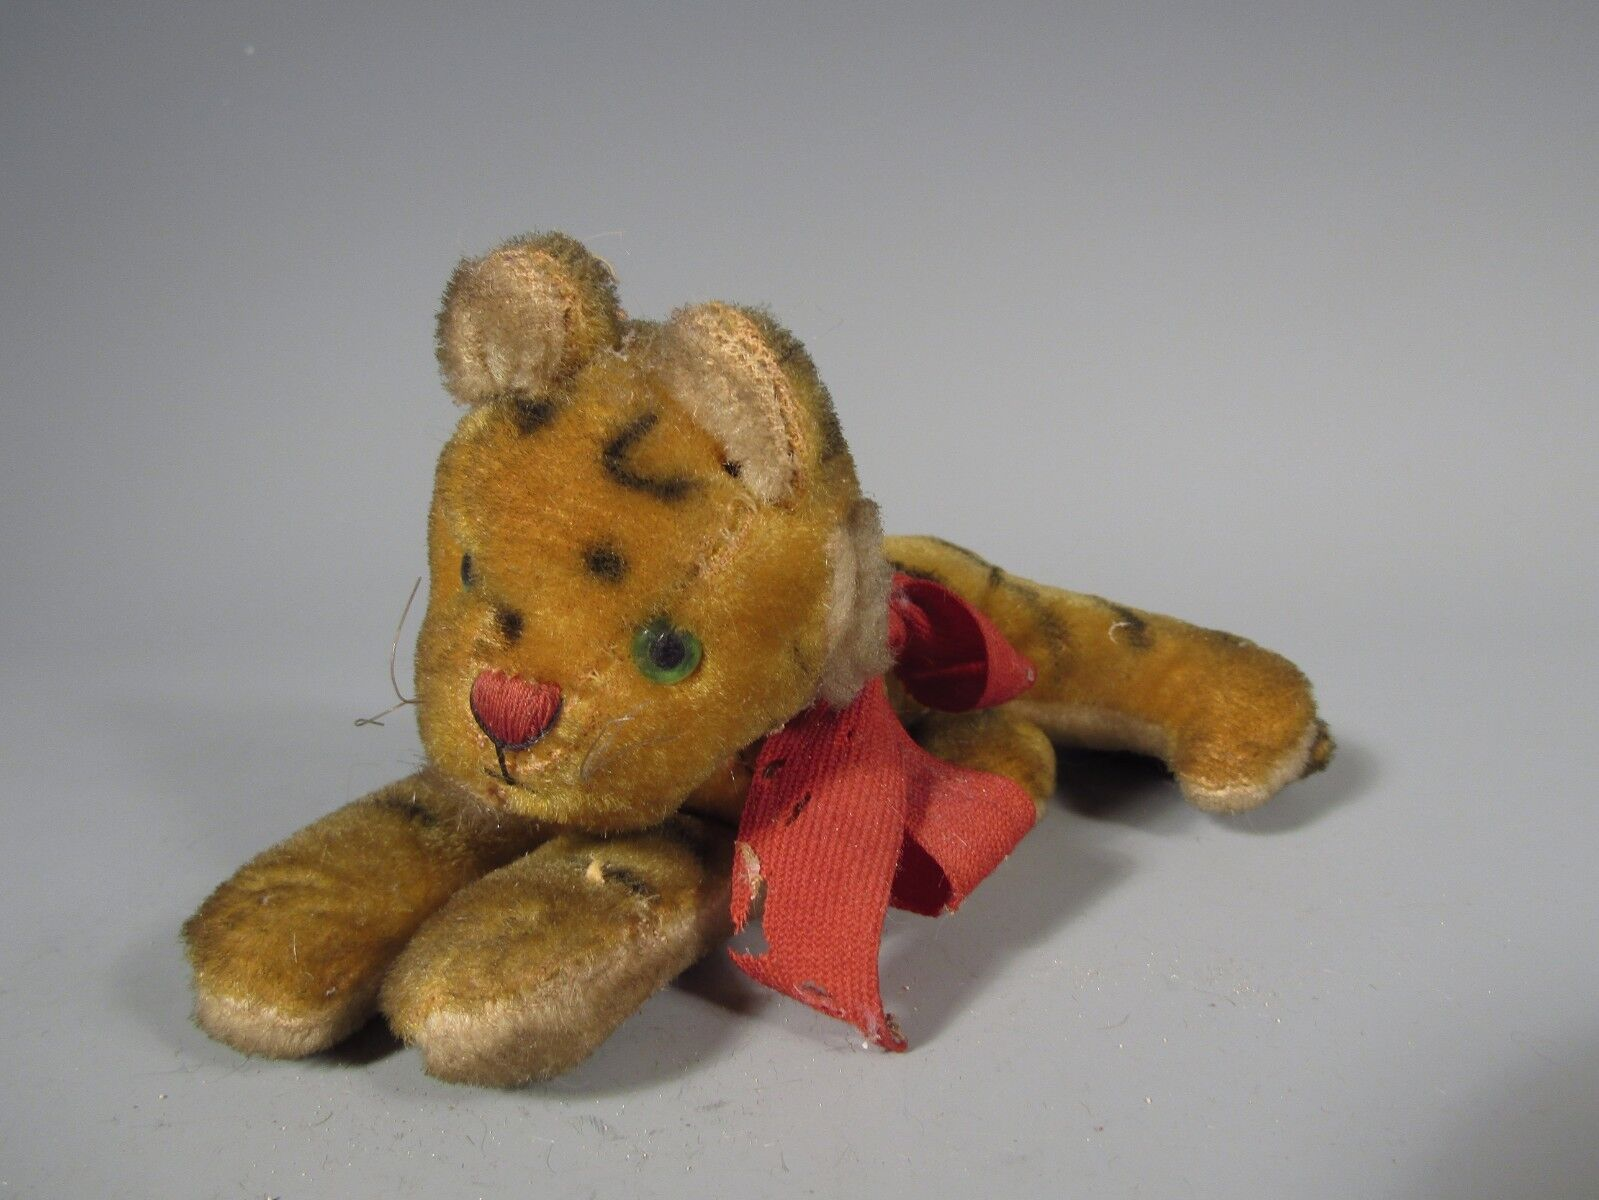 RARE German Germany Steiff Tiger Cub Green Eyes Stuffed Toy ca. 20th century